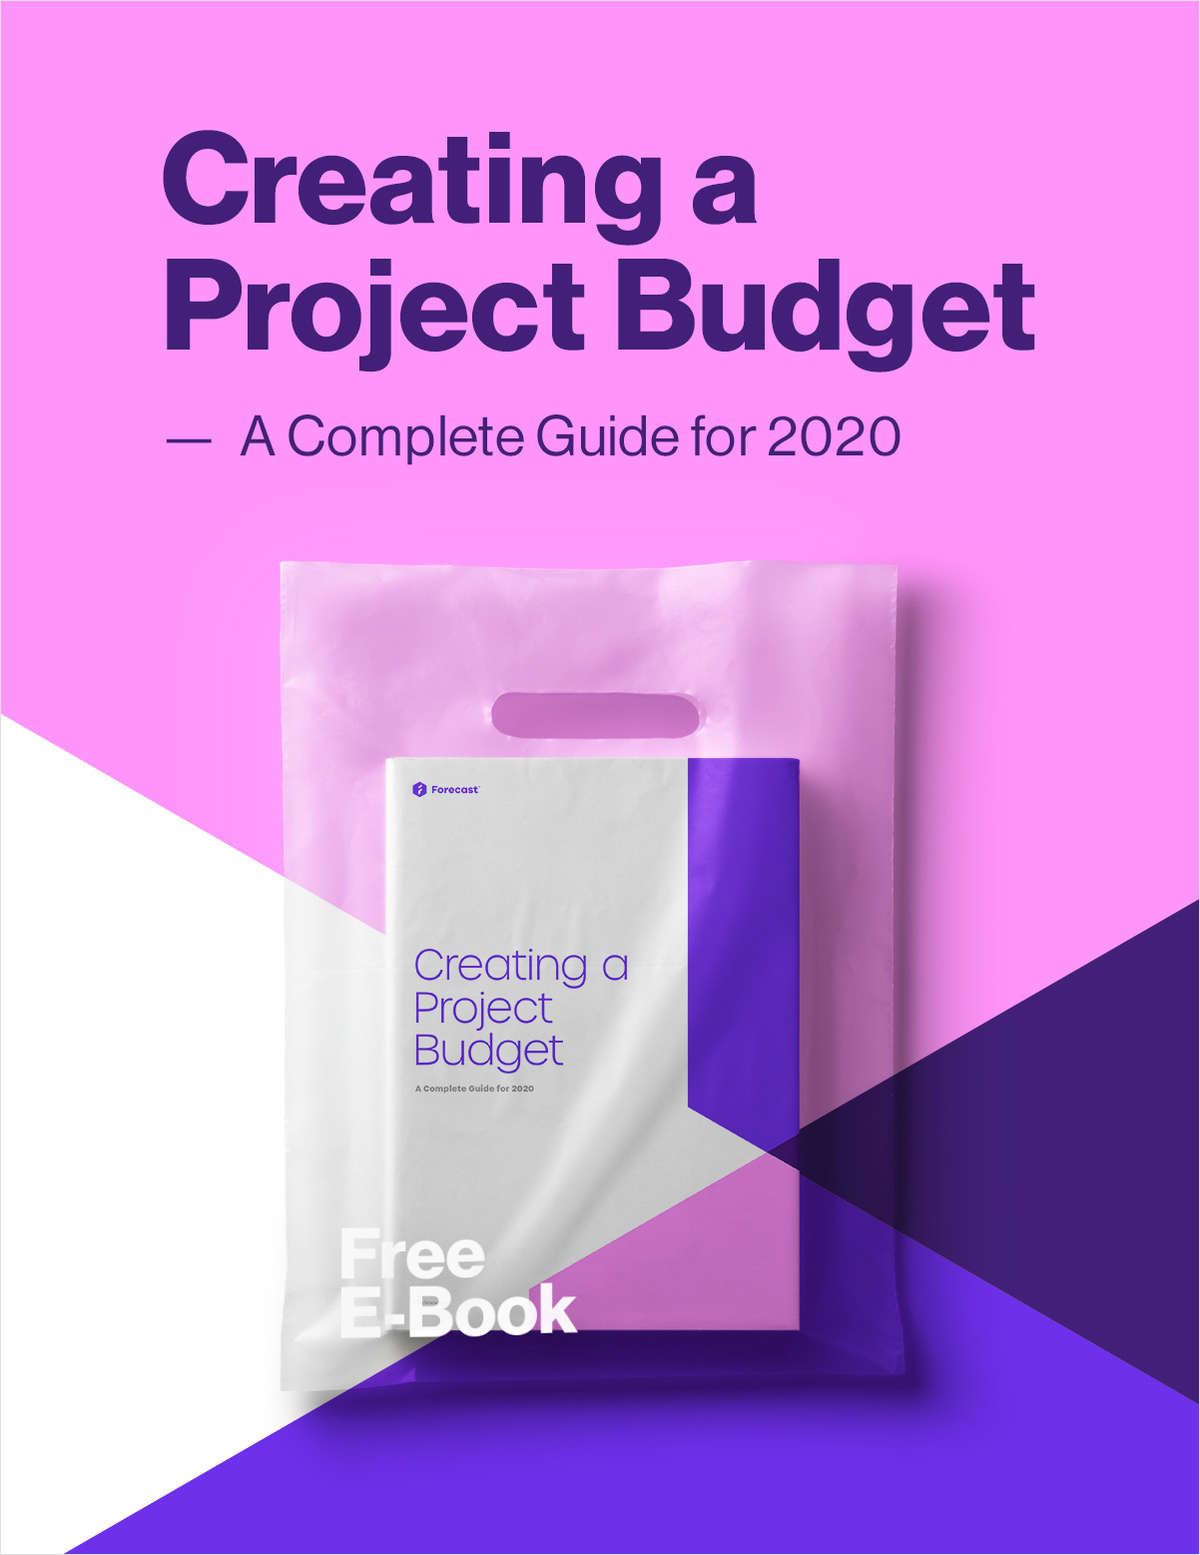 Creating a Project Budget - a Complete Guide for 2020